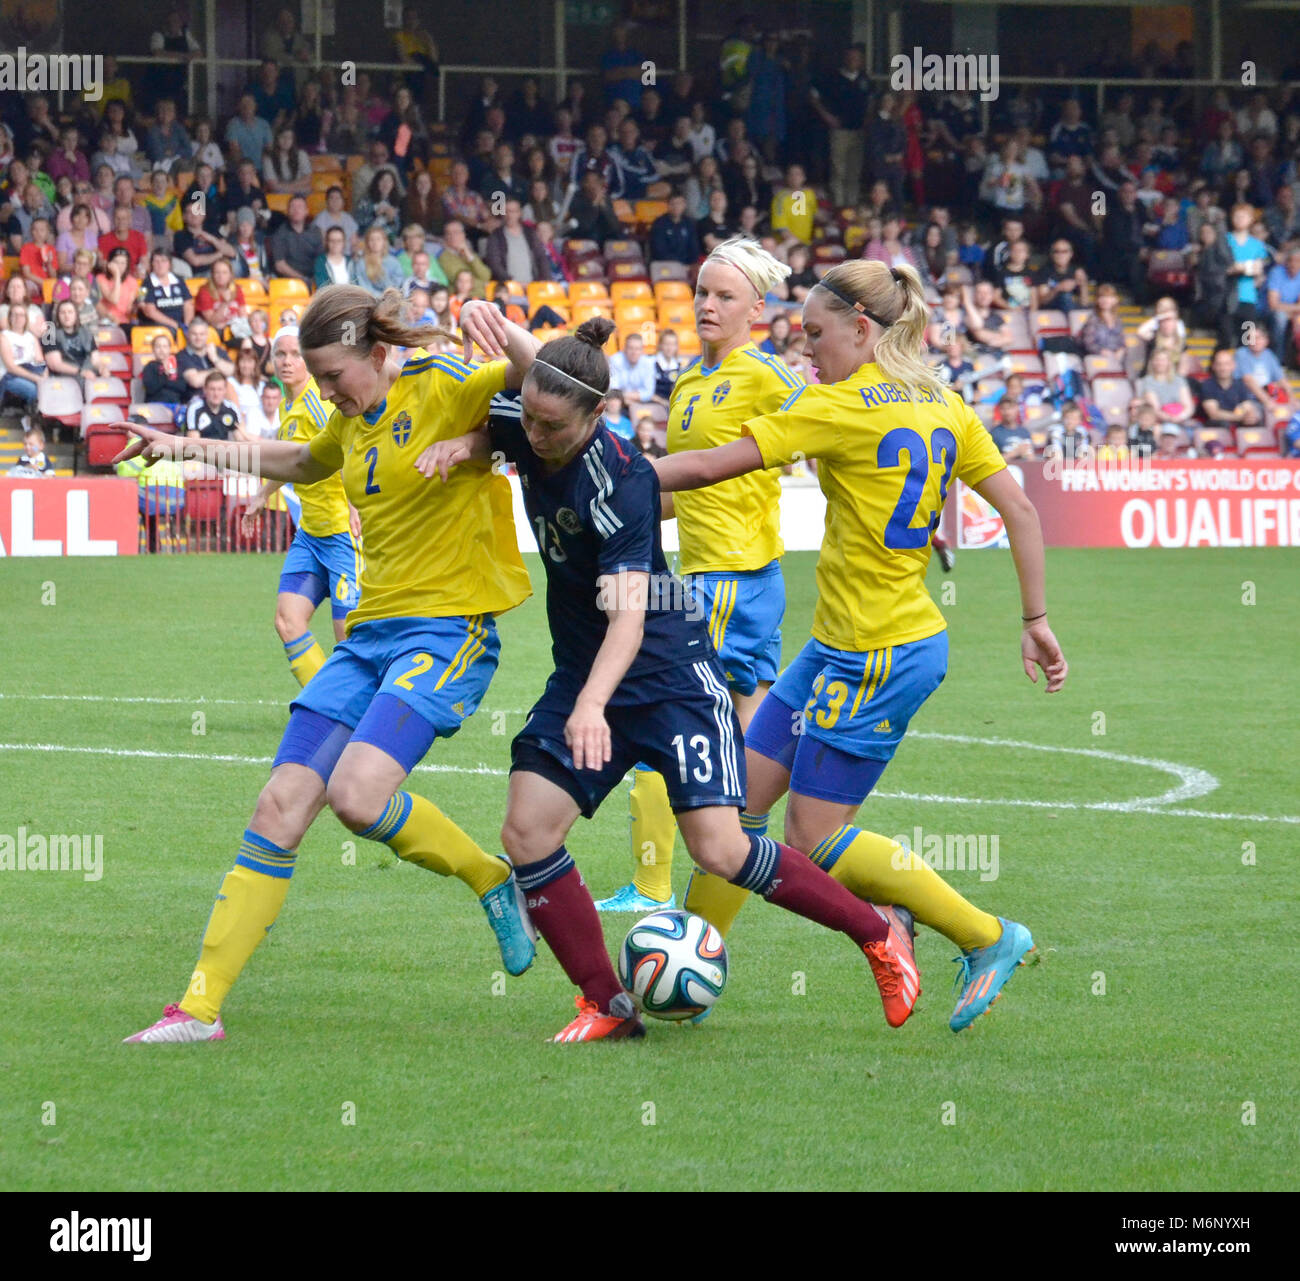 MOTHERWELL, SCOTLAND - JUNE 14th 2014: Scotland's Jane Ross trying to keep the ball from three Swedish players. Stock Photo